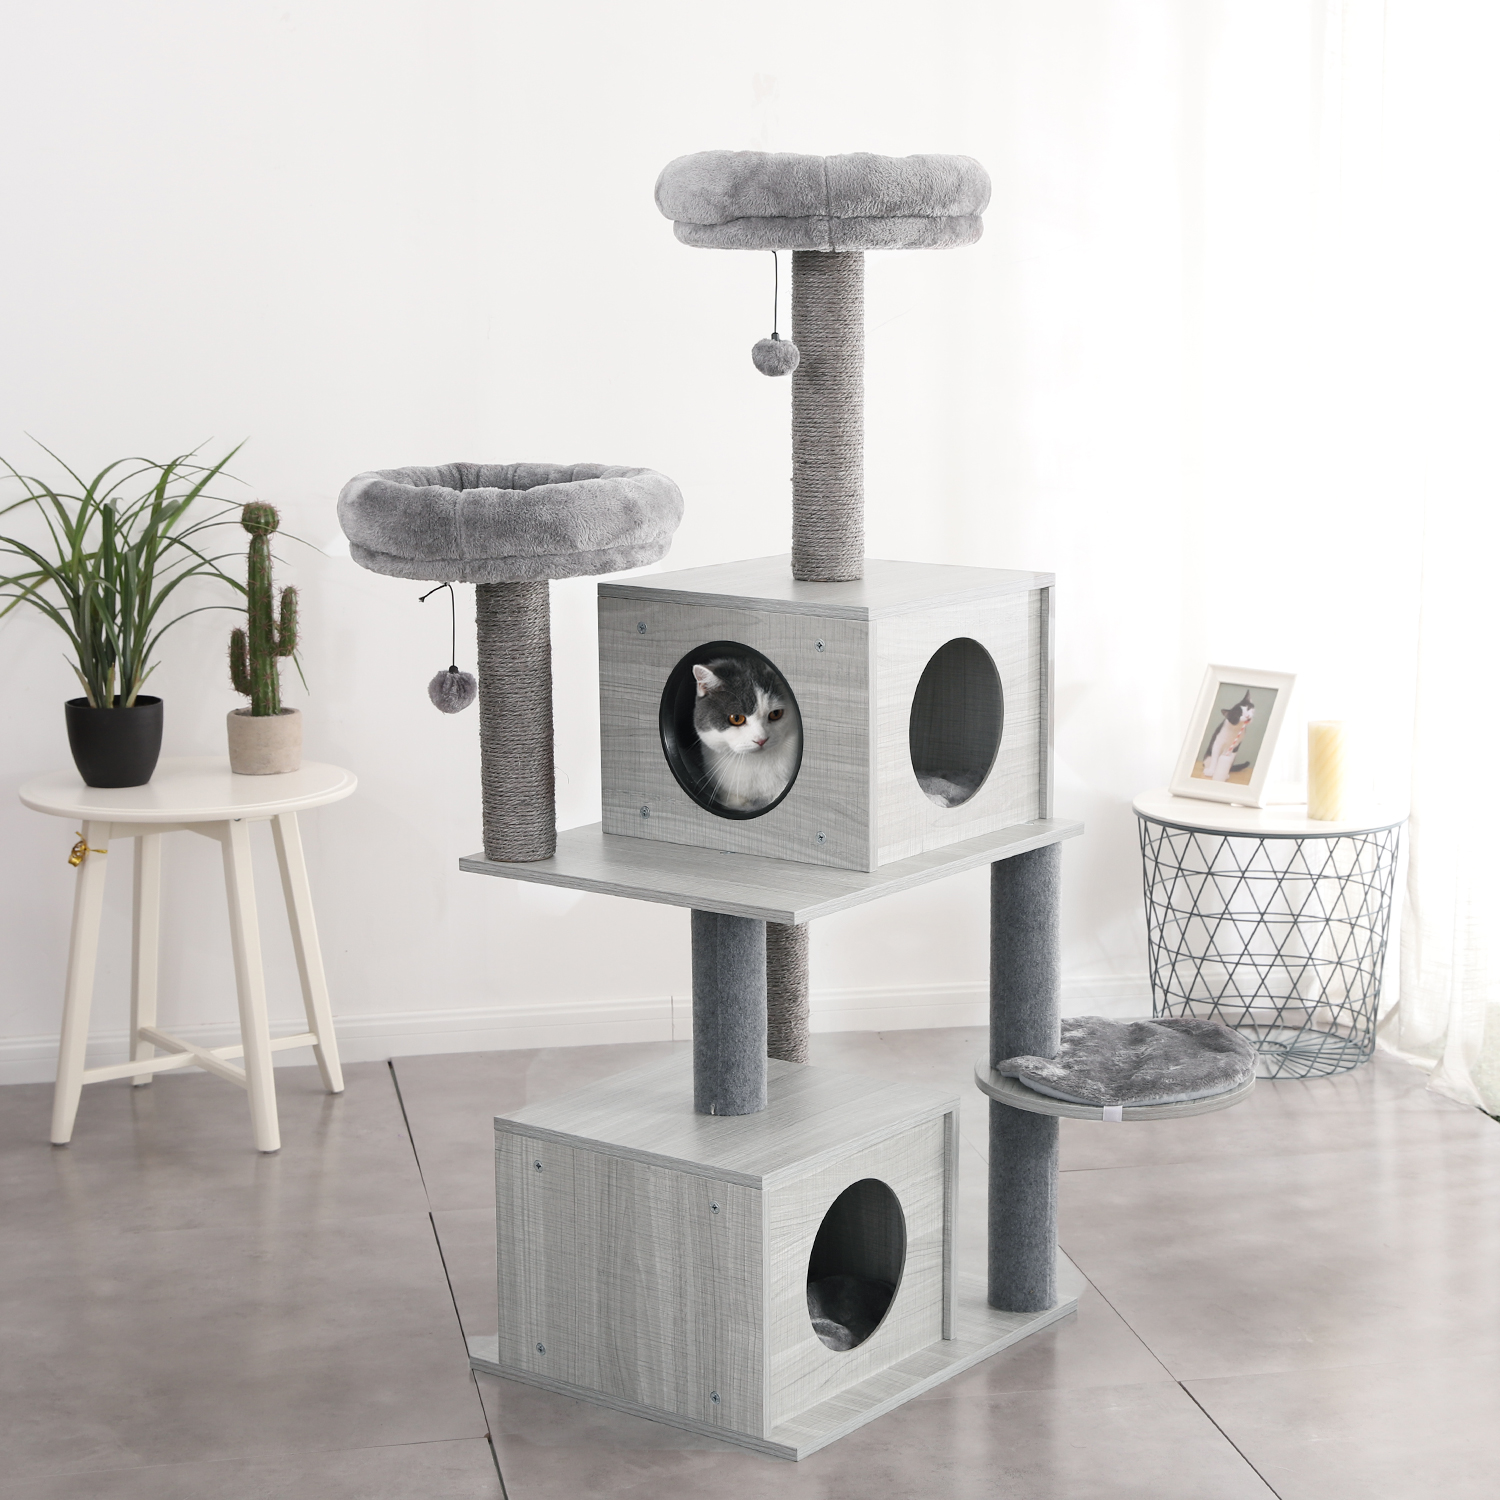 K-star Domestic <font><b>Pet</b></font> <font><b>Cat</b></font> <font><b>Tree</b></font> <font><b>Tower</b></font> Condo House Scratcher Post Toy For <font><b>Cat</b></font> Kitten <font><b>Cat</b></font> Jumping Toy With Ladder Playing <font><b>Tree</b></font> image